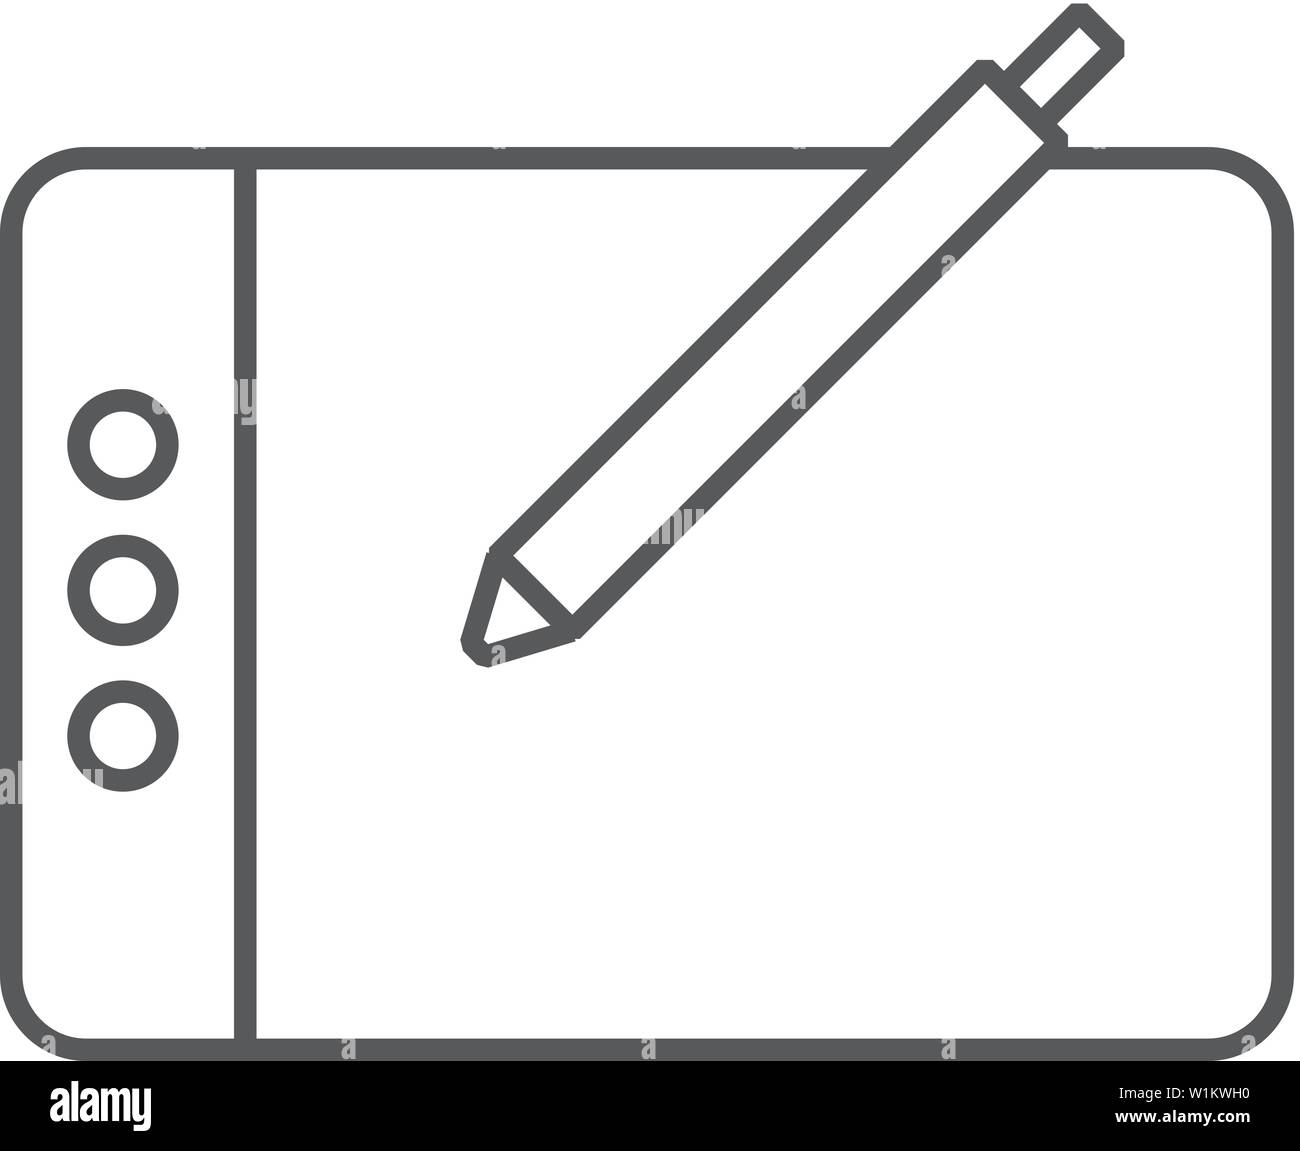 Drawing tablet icon in thin outline style  Illustrator tools